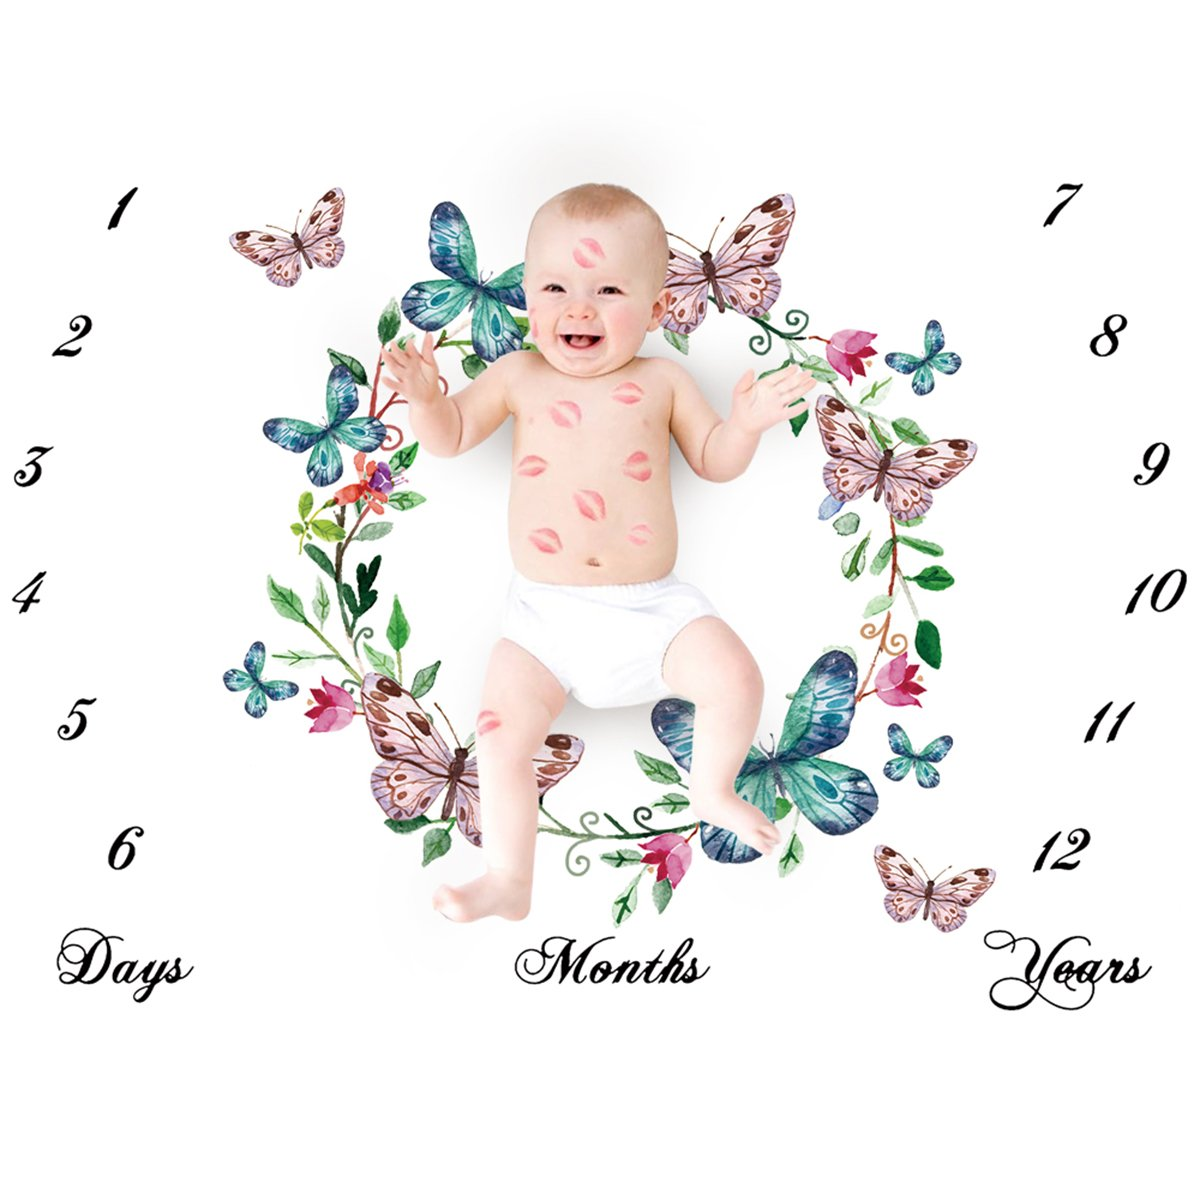 Baby Monthly Milestone Blanket, Newborn Infant Baby Boy Girl Monthly Milestone Blanket Calendar for Photopraghy Photo Props Backdrop Background Cloth (Butterfly) Camidy